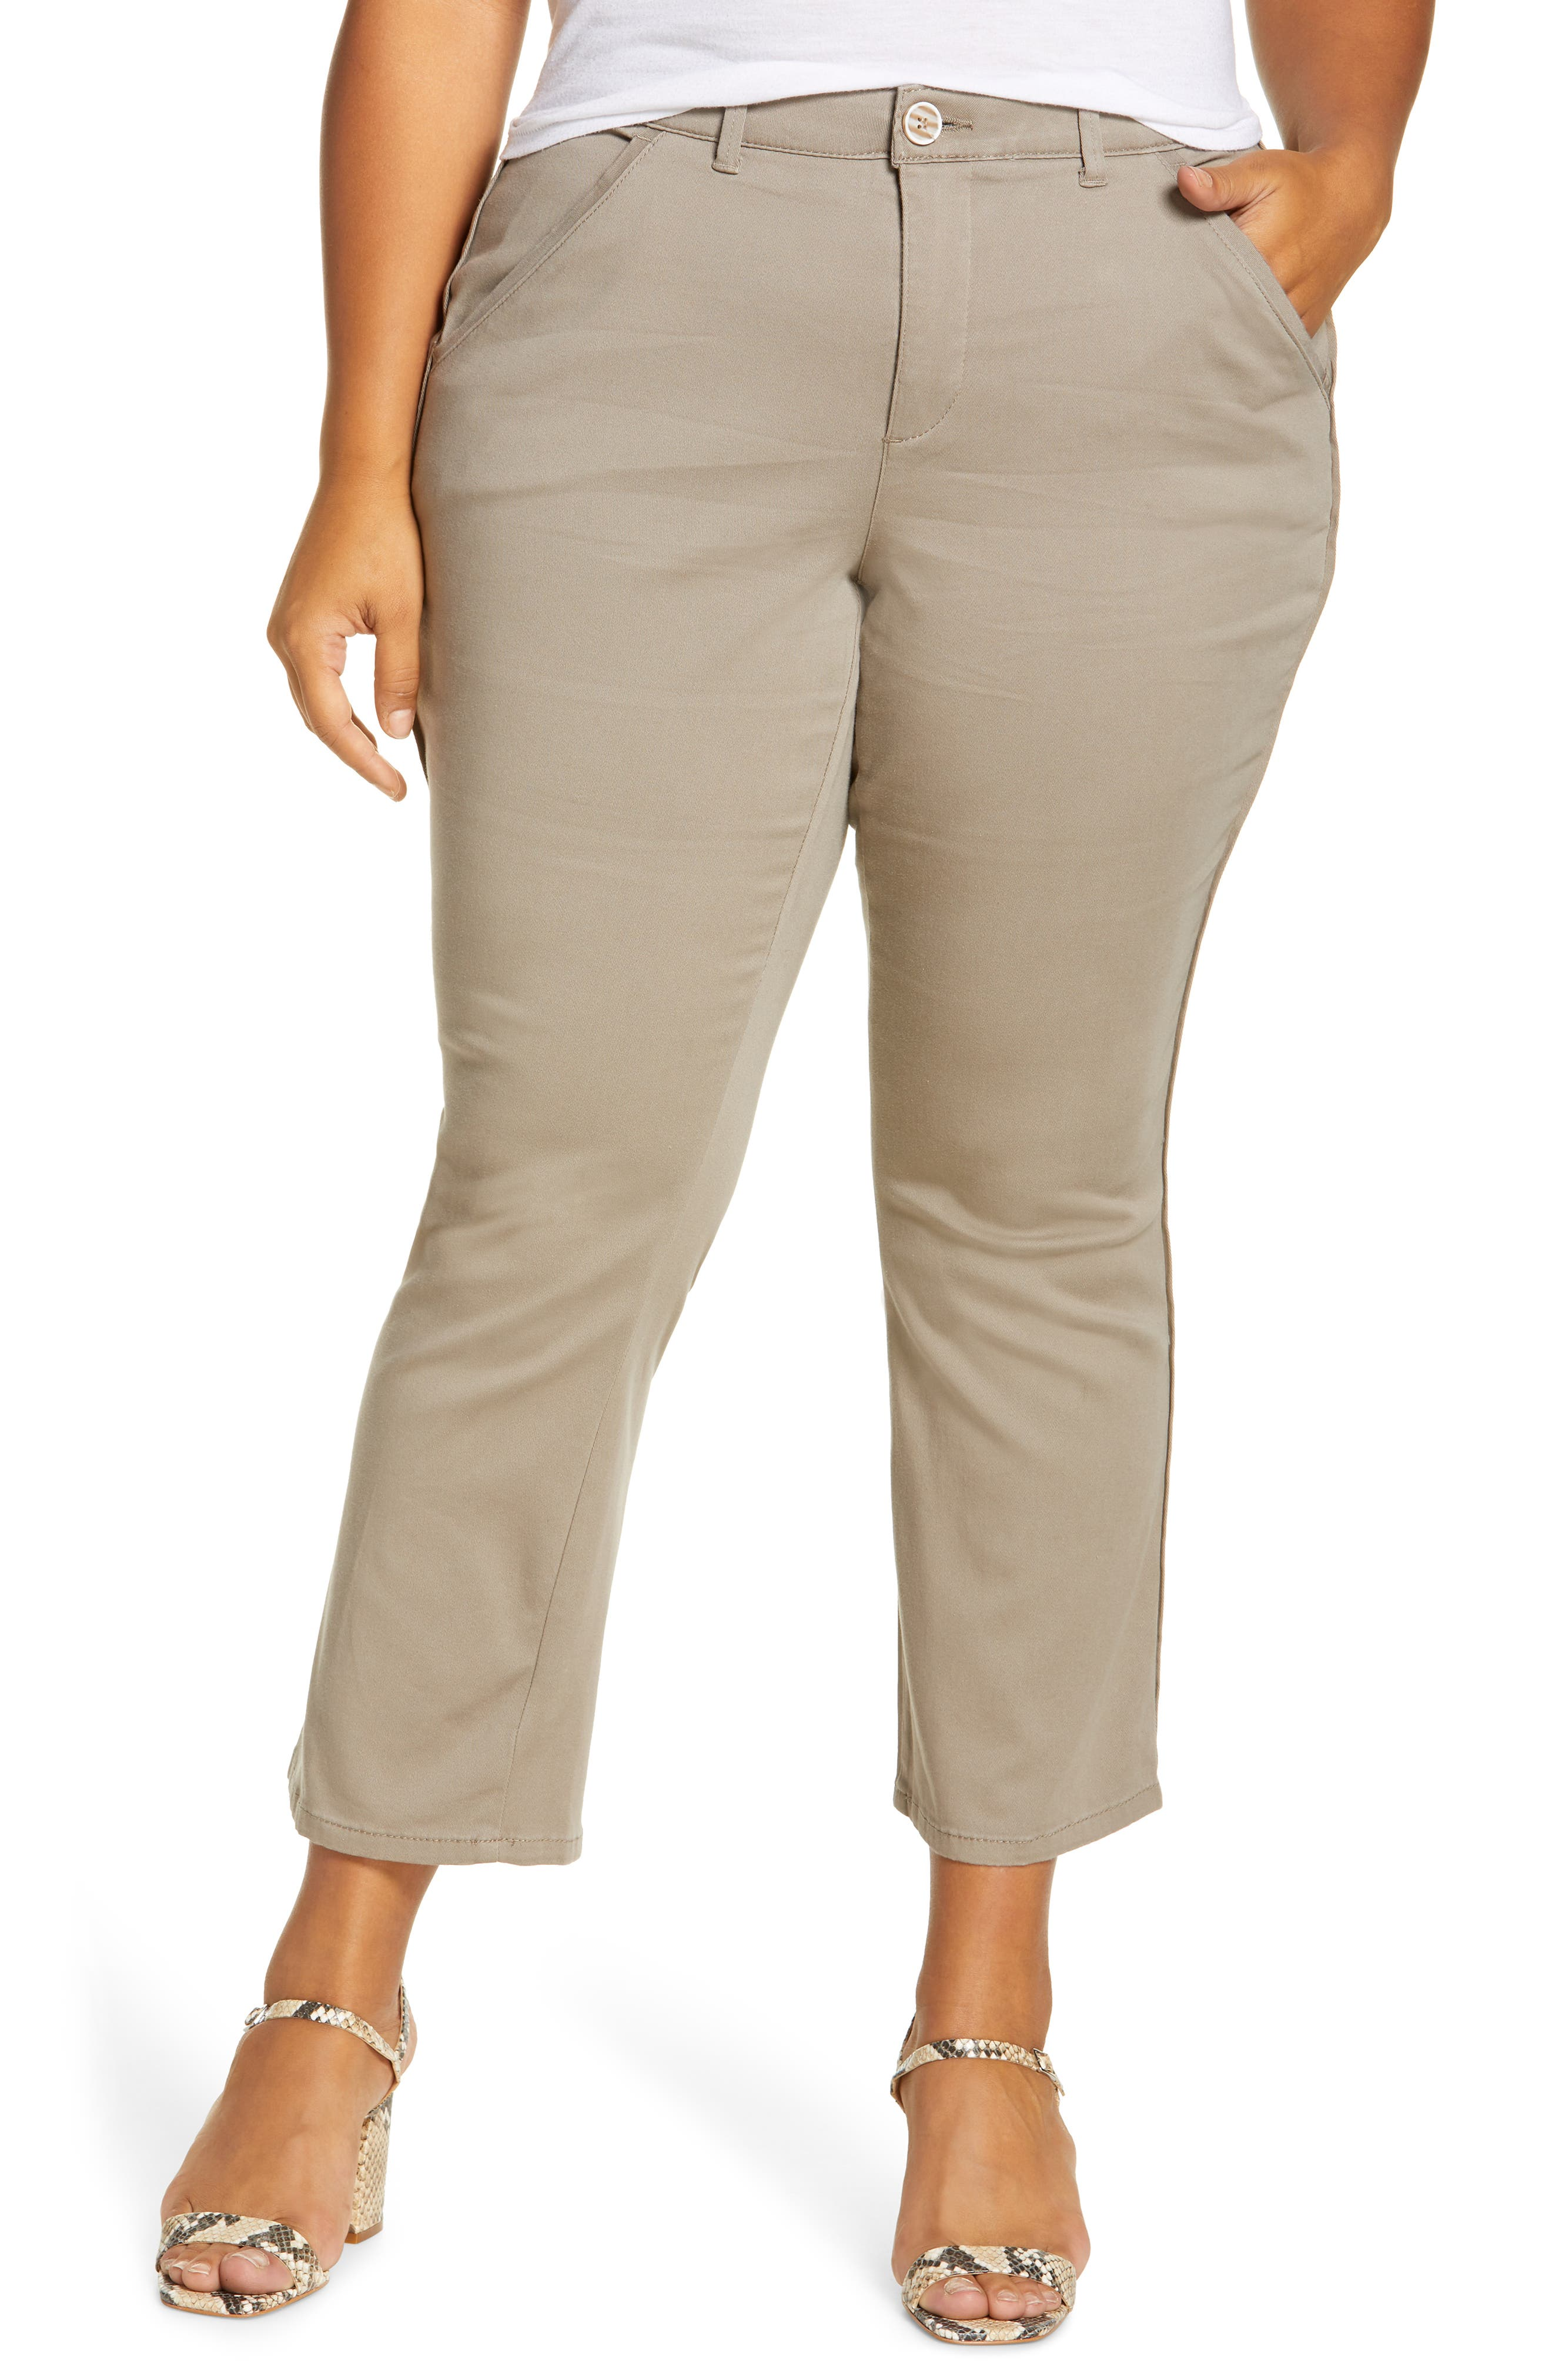 Staple pants are easy favorites thanks to power-mesh panels that mold and hold, plus a waistband that offers interior control and booty-lift construction. Style Name: Wit & Wisdom Ab-Solution Luxe Touch Cotton Blend Ankle Trousers (Plus Size) (Nordstrom Exclusive). Style Number: 6047210. Available in stores.